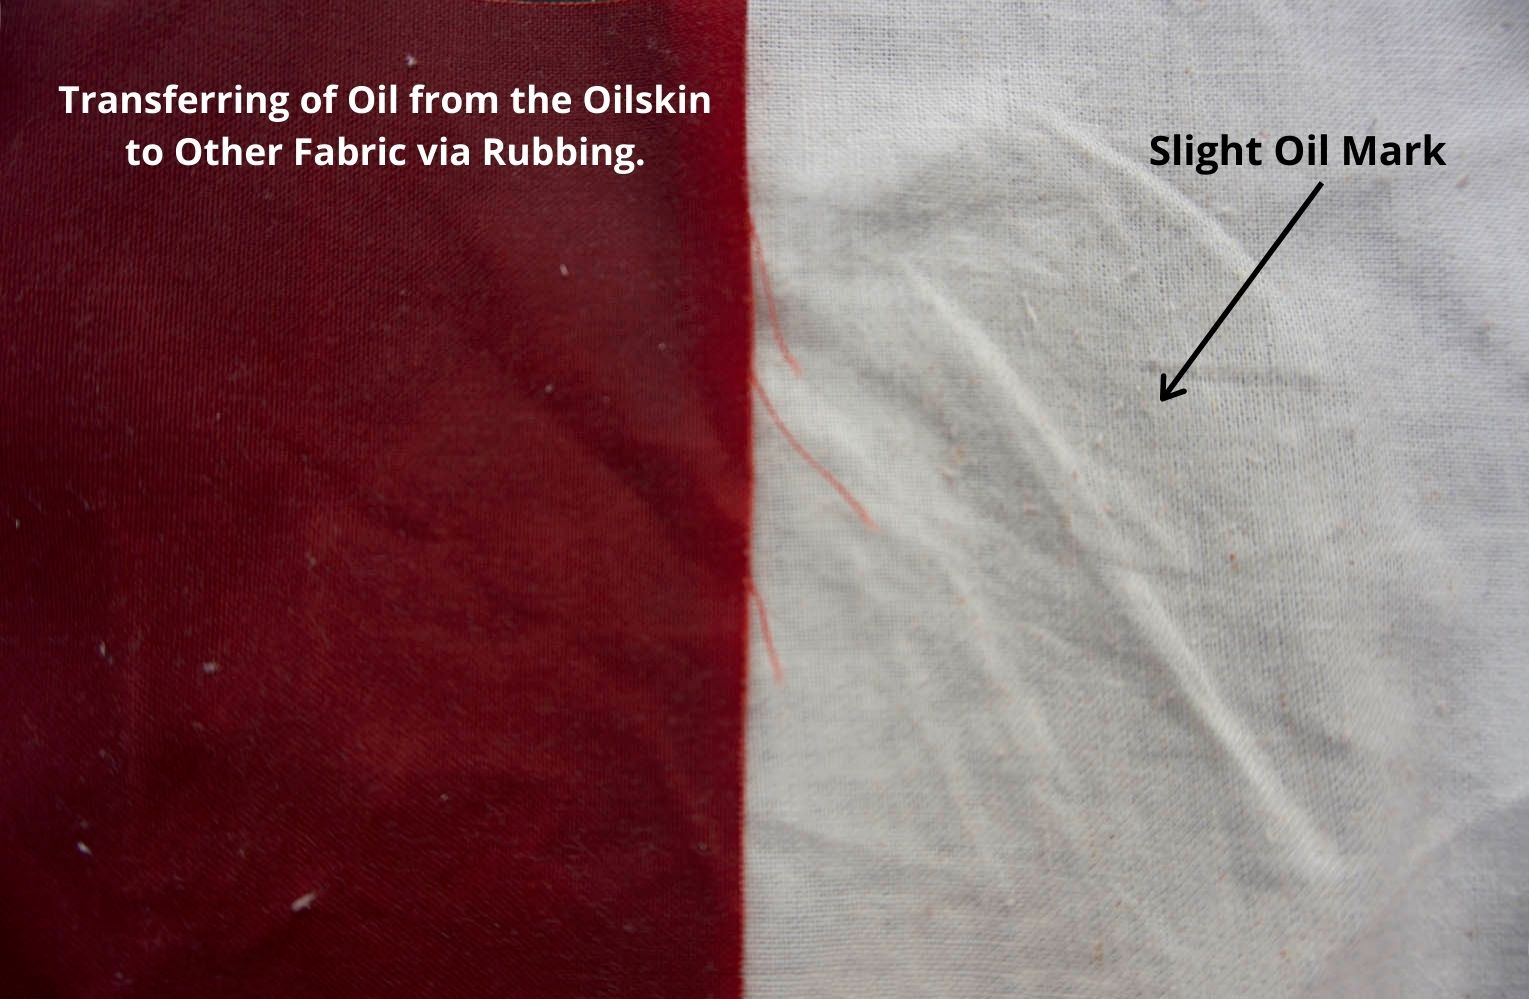 side by side photo of the oilskin. The oilskin is on the left hand side and the muslin is on the right hand side. it shows a slight discolouration of the muslin